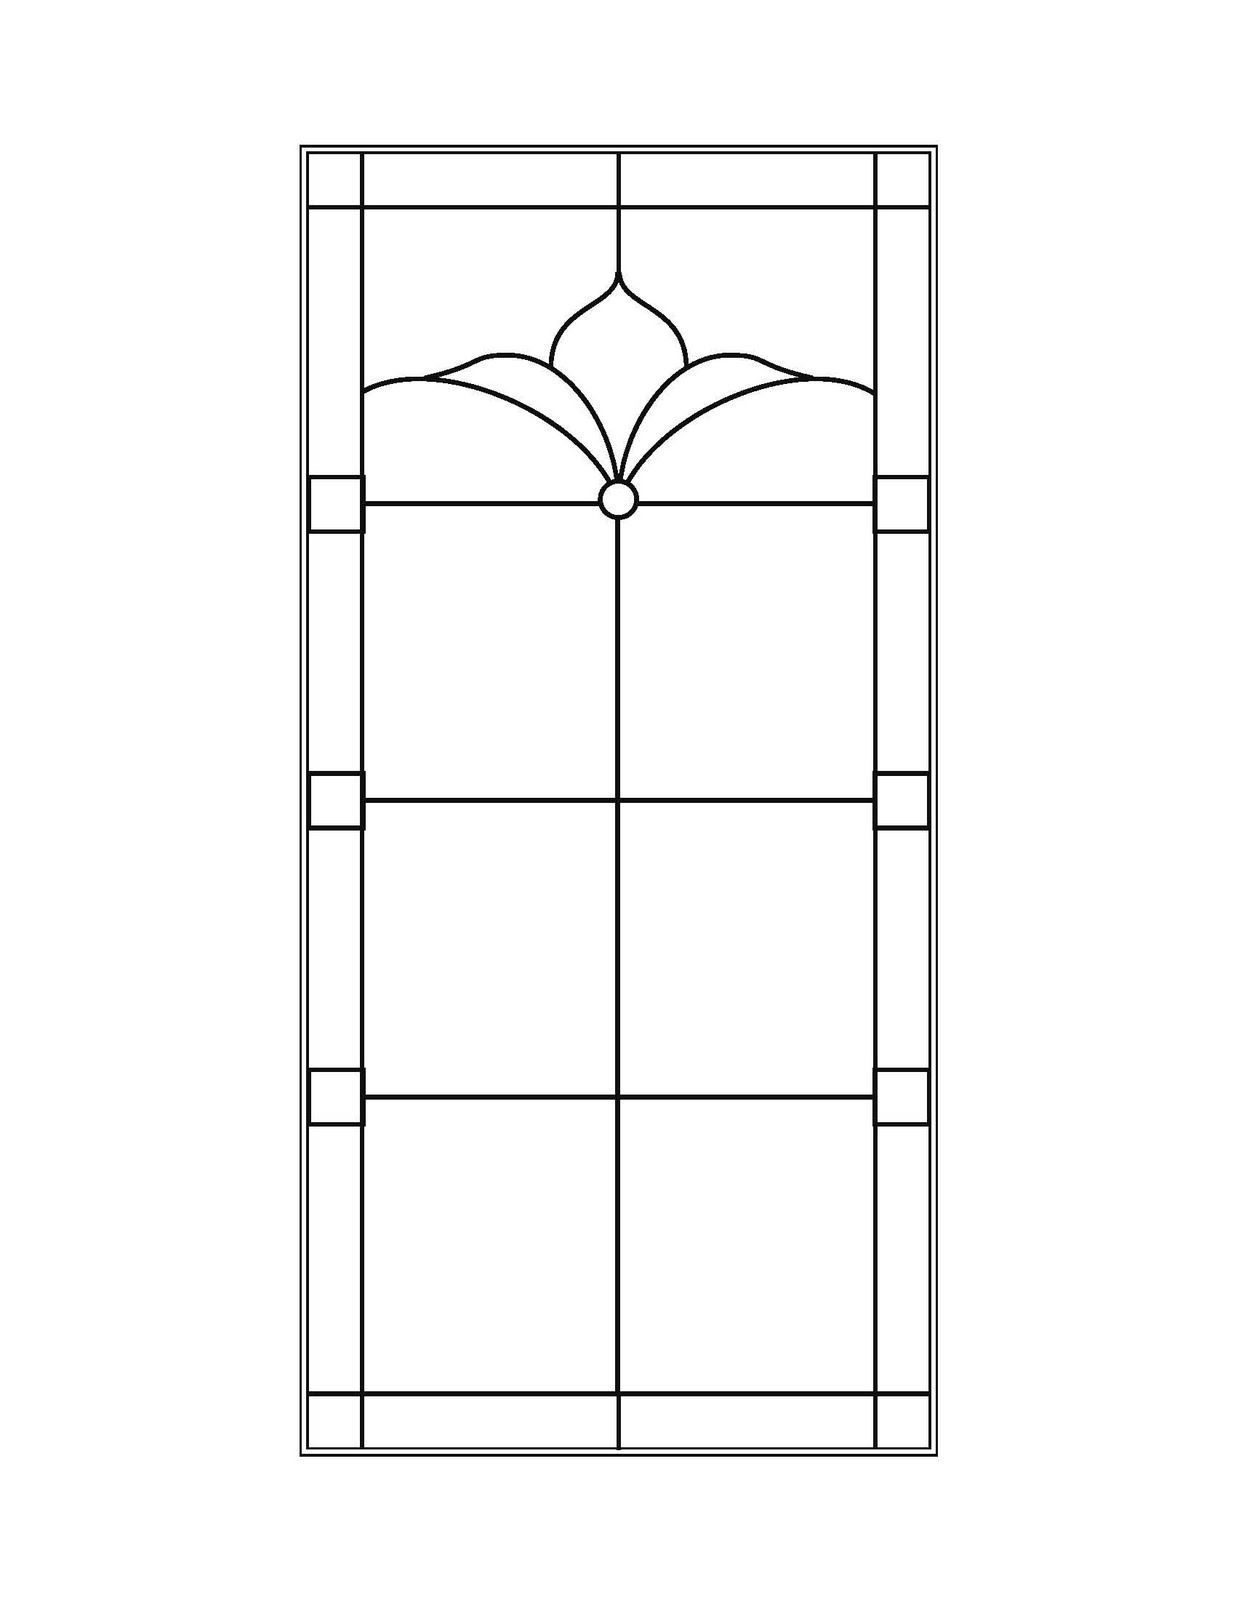 Stained Glass Window Patterns : Stained glass patterns for free november